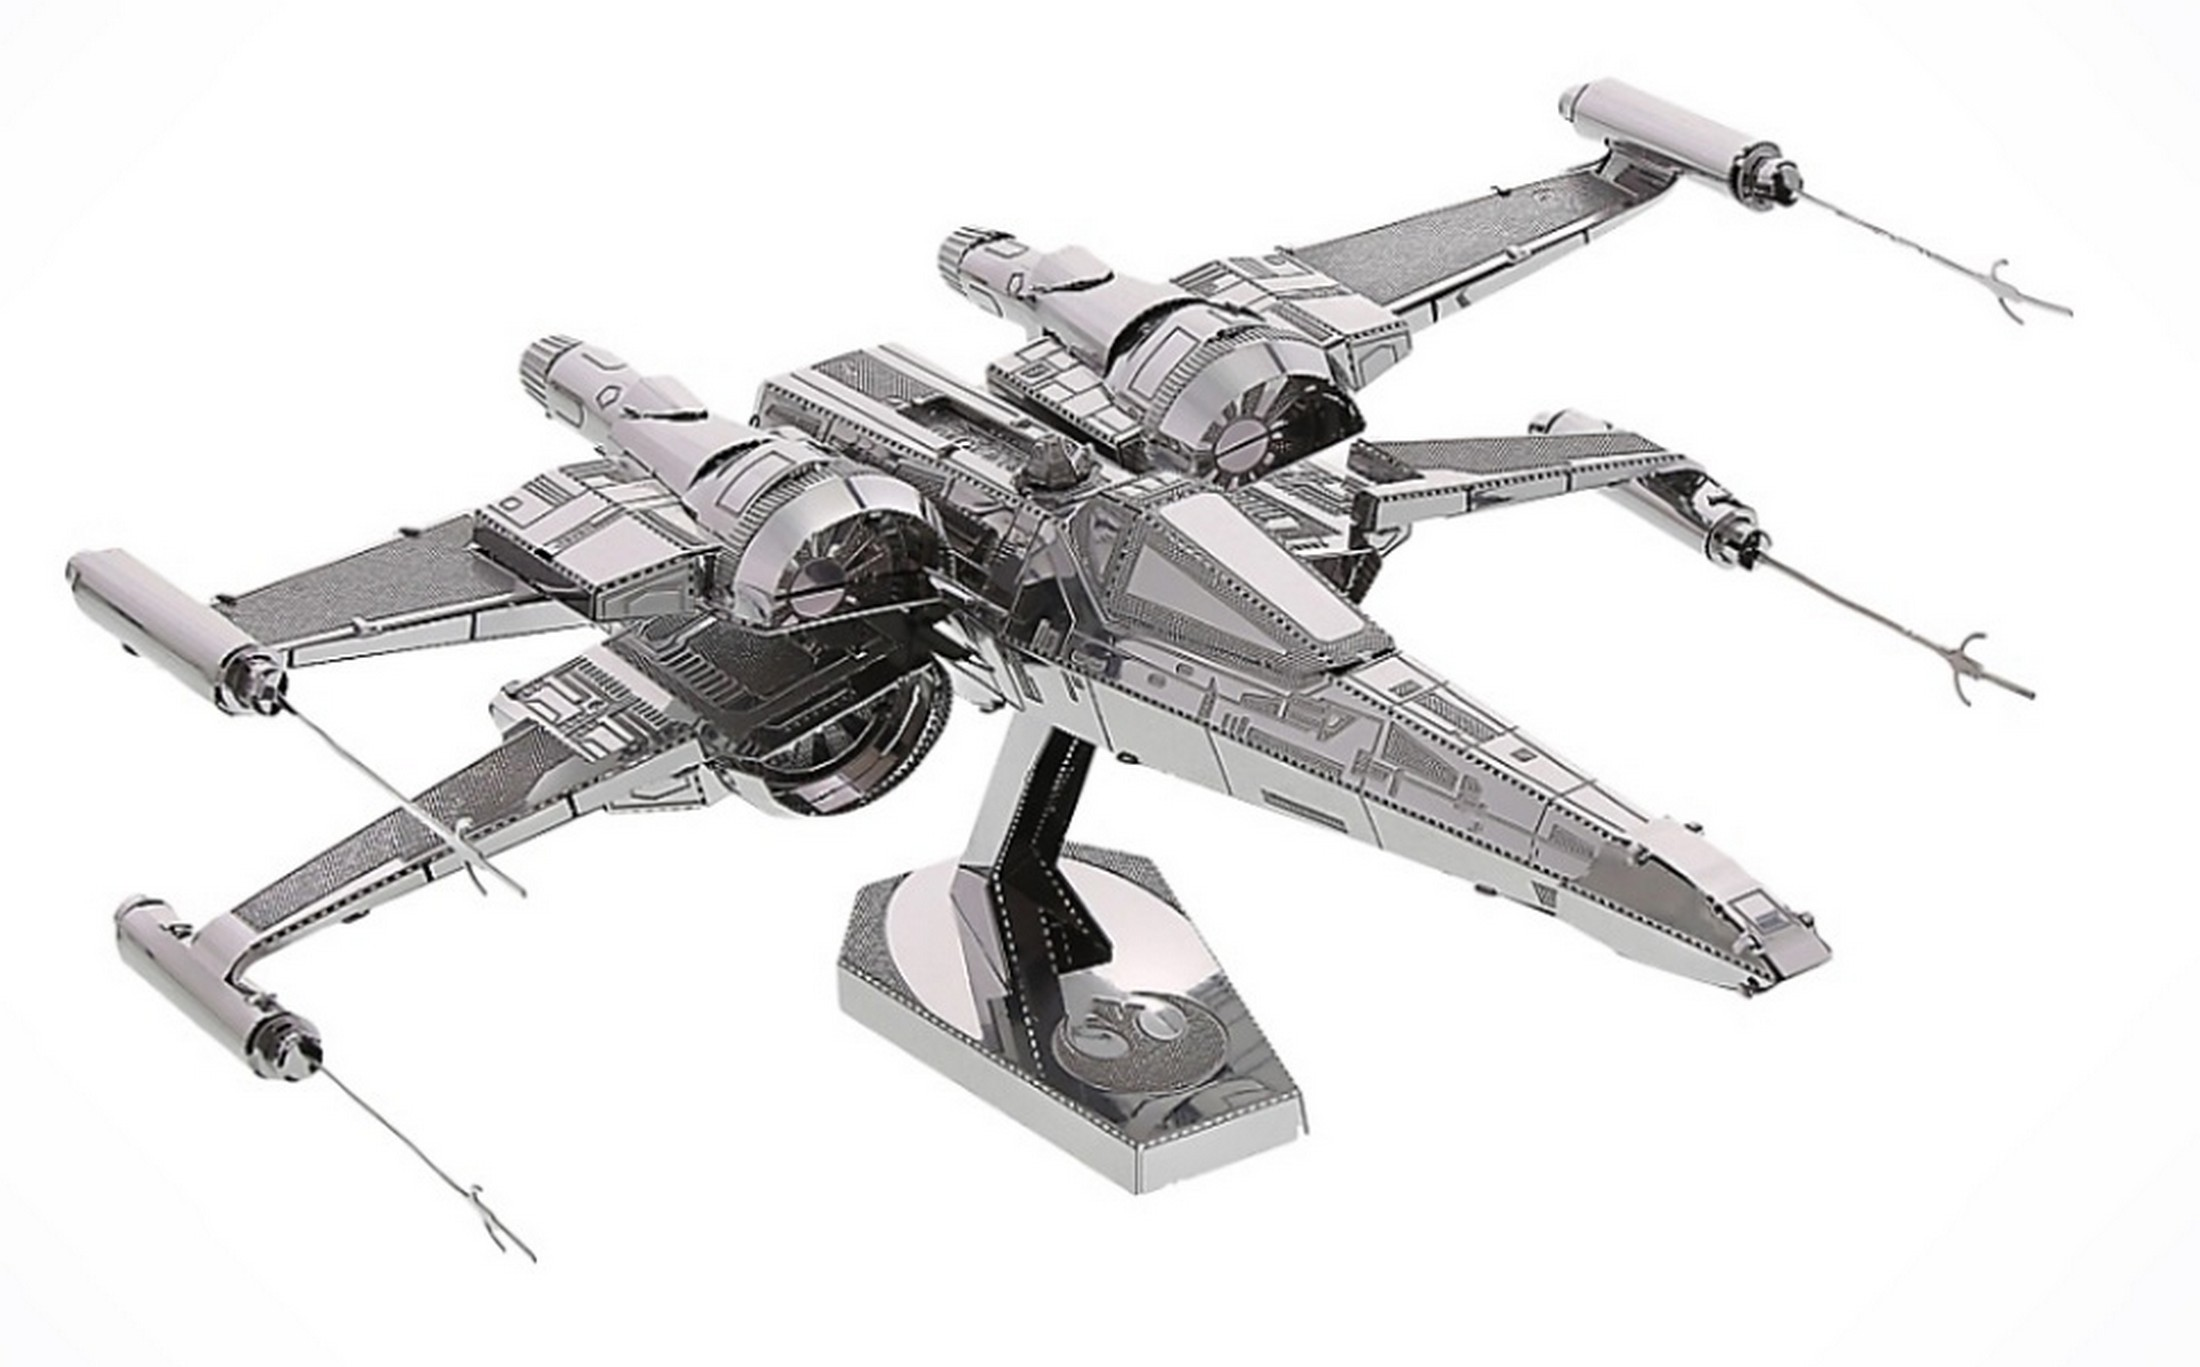 The Force Awakens Poe Dameron's X-Wing Fighter 3D Metal Model Kit ~ Disney Star Wars © Dizdude.com